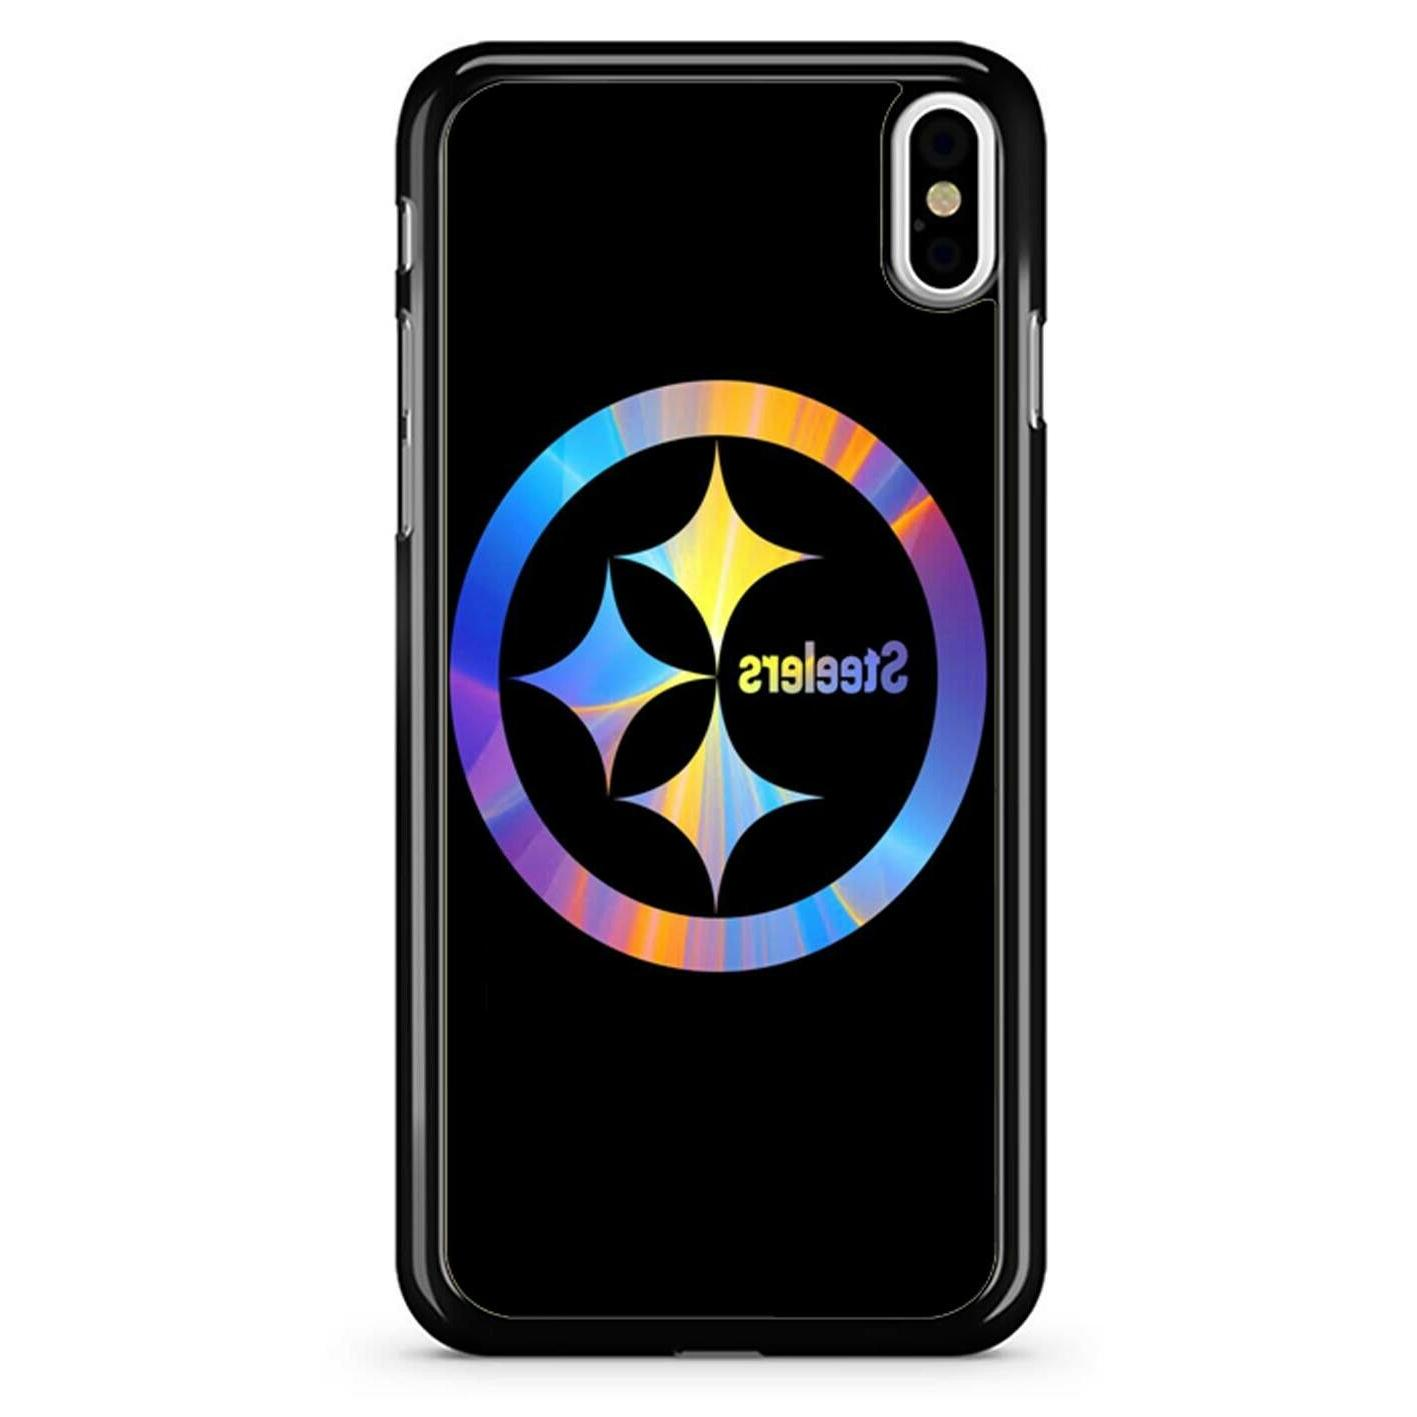 phone cases pittsburgh steelers 5 case iphone